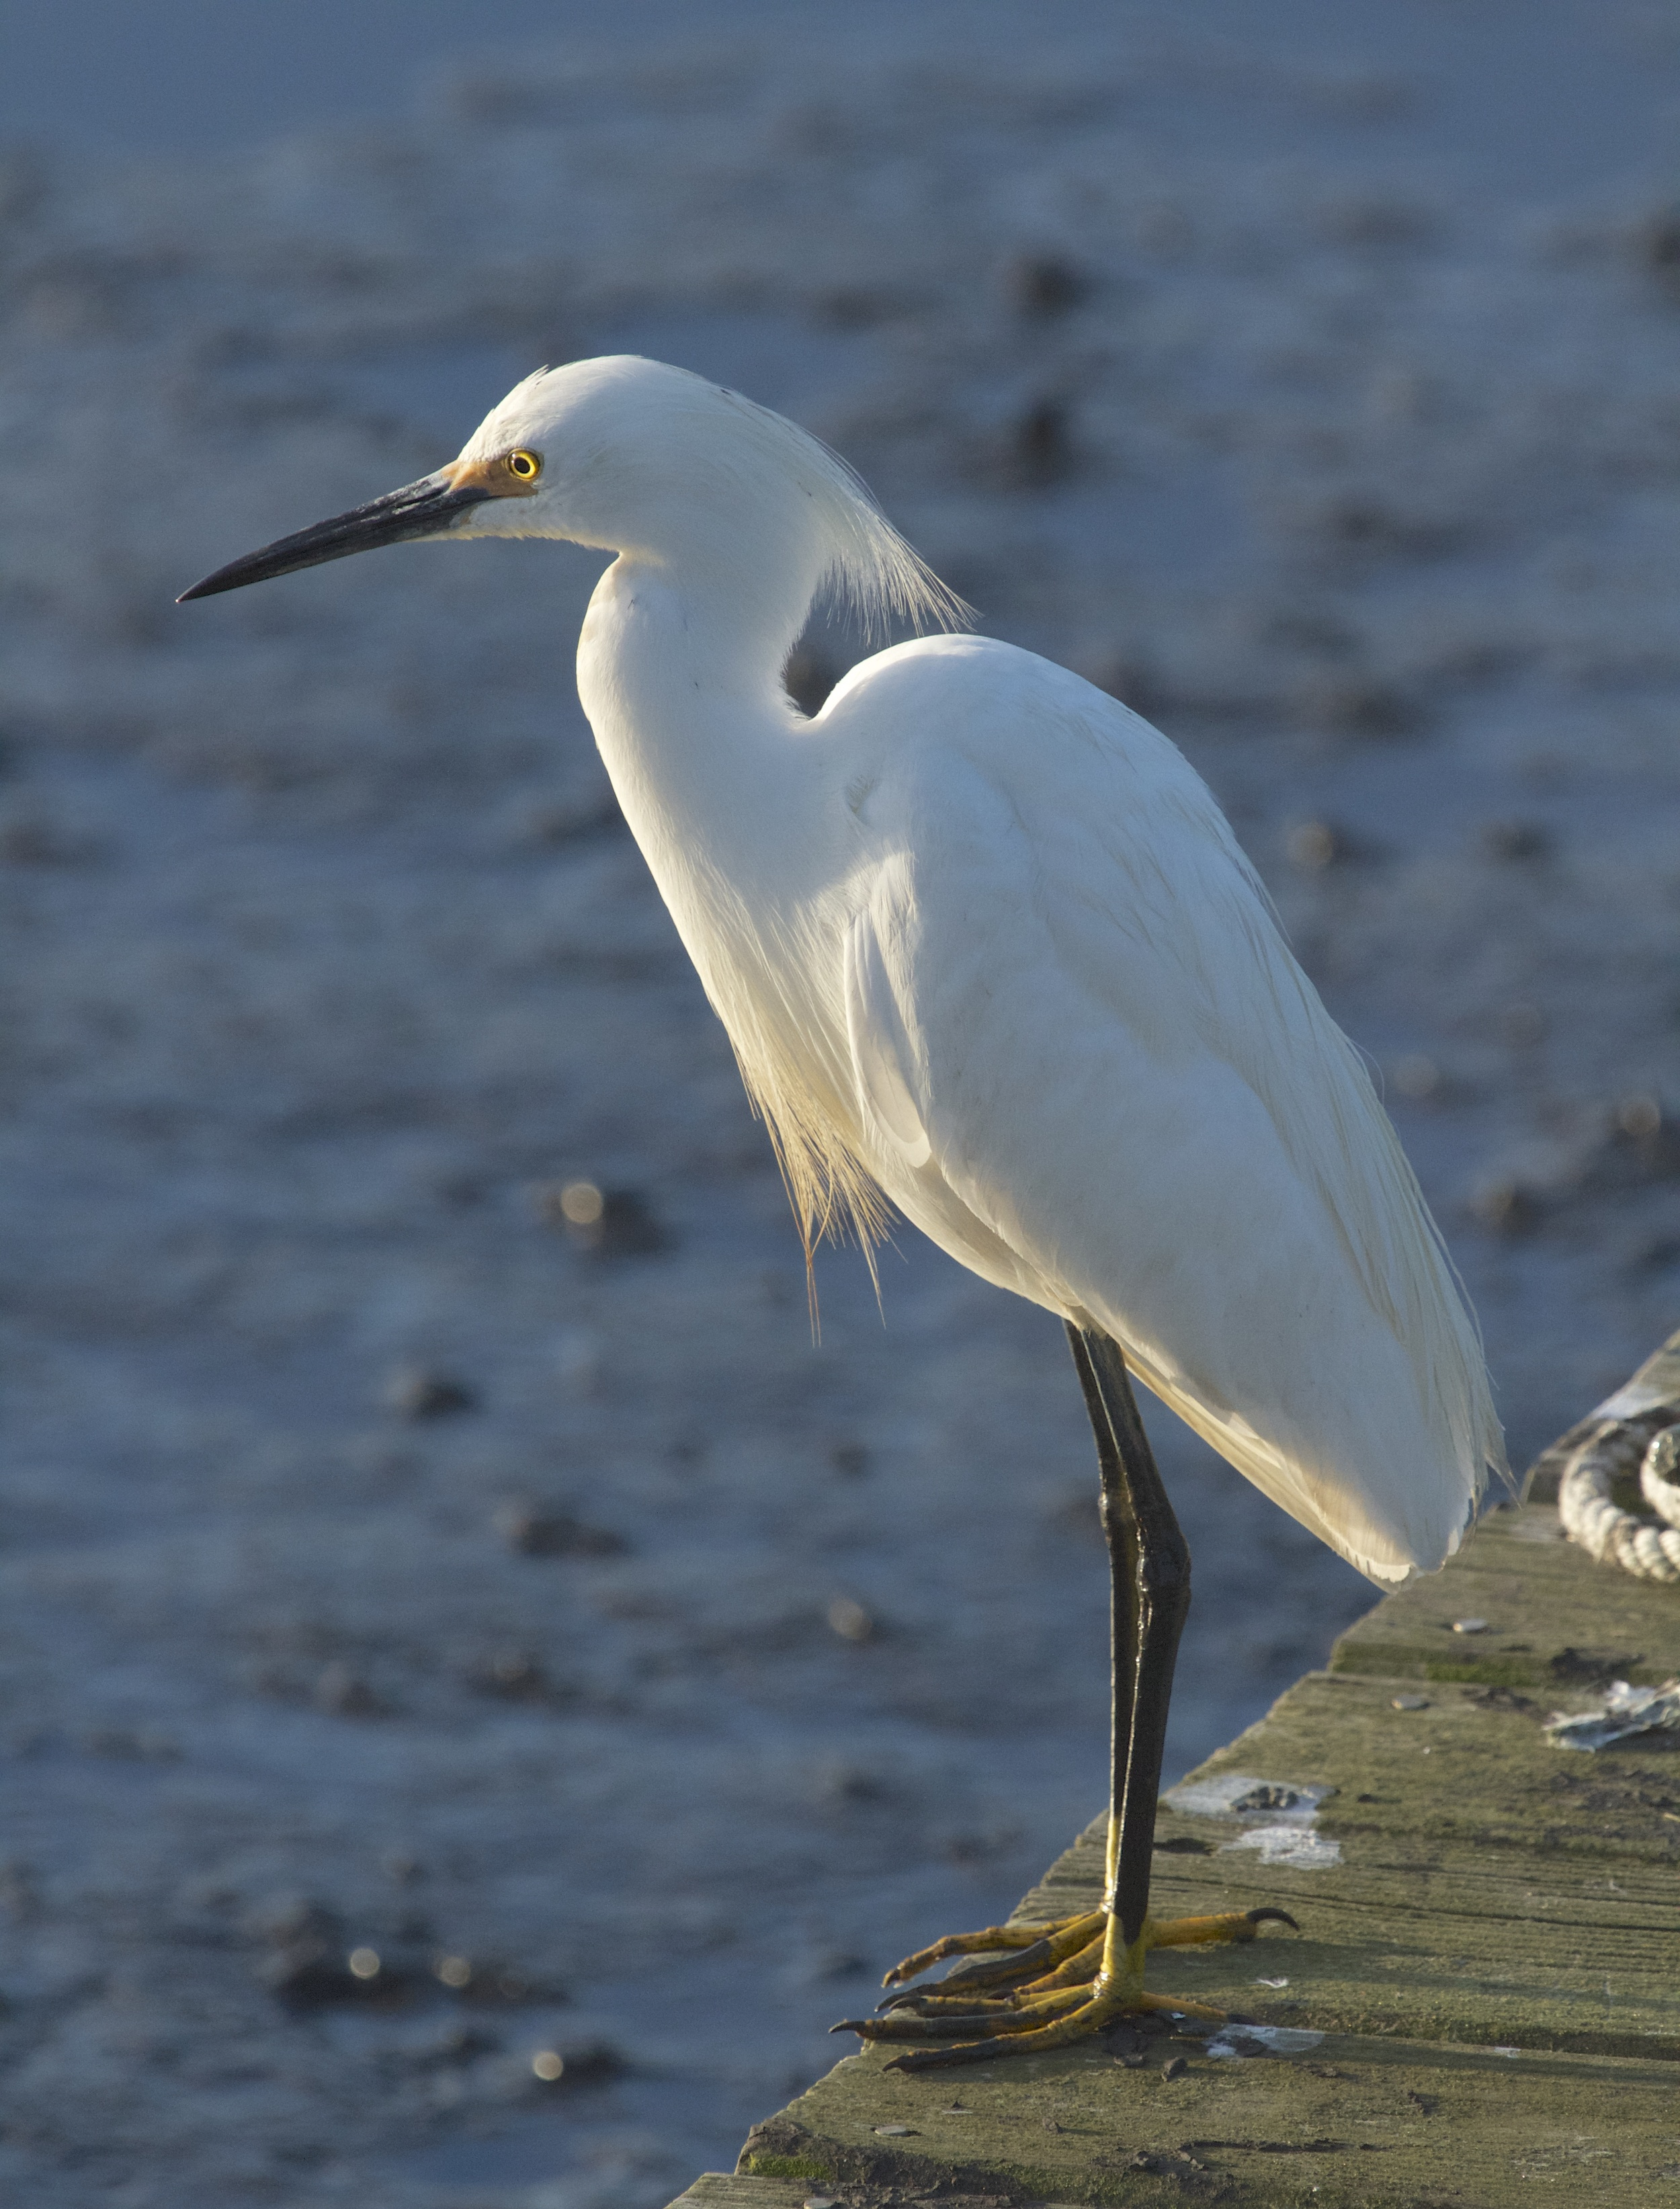 Snowy Egret greets the morning light.